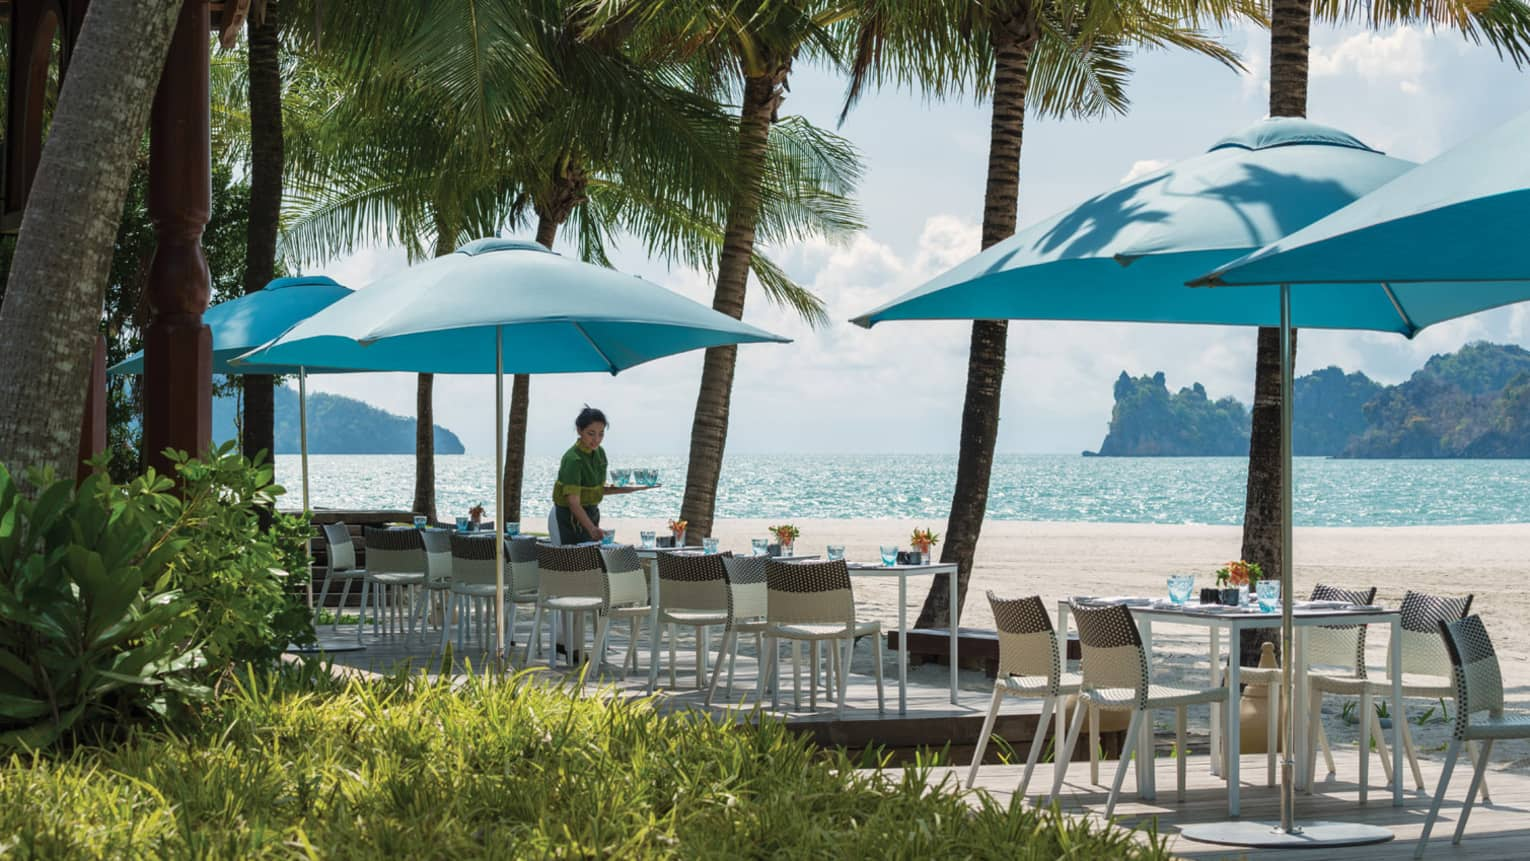 Server sets patio dining tables under blue umbrellas along beach